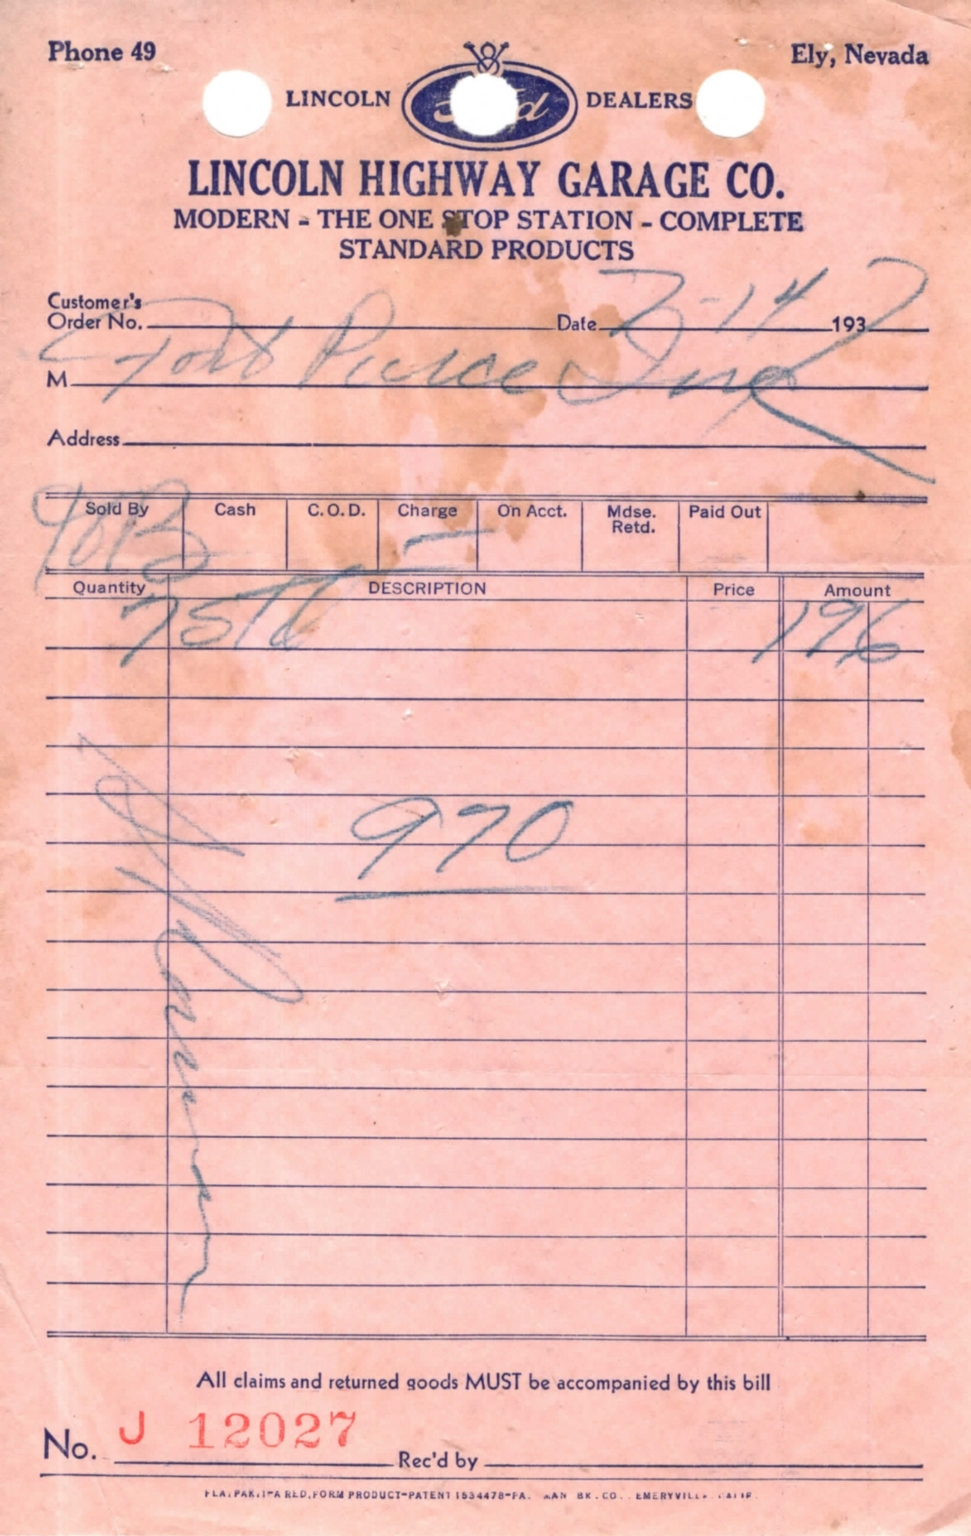 Invoice-Lincoln Highway Garage Co.